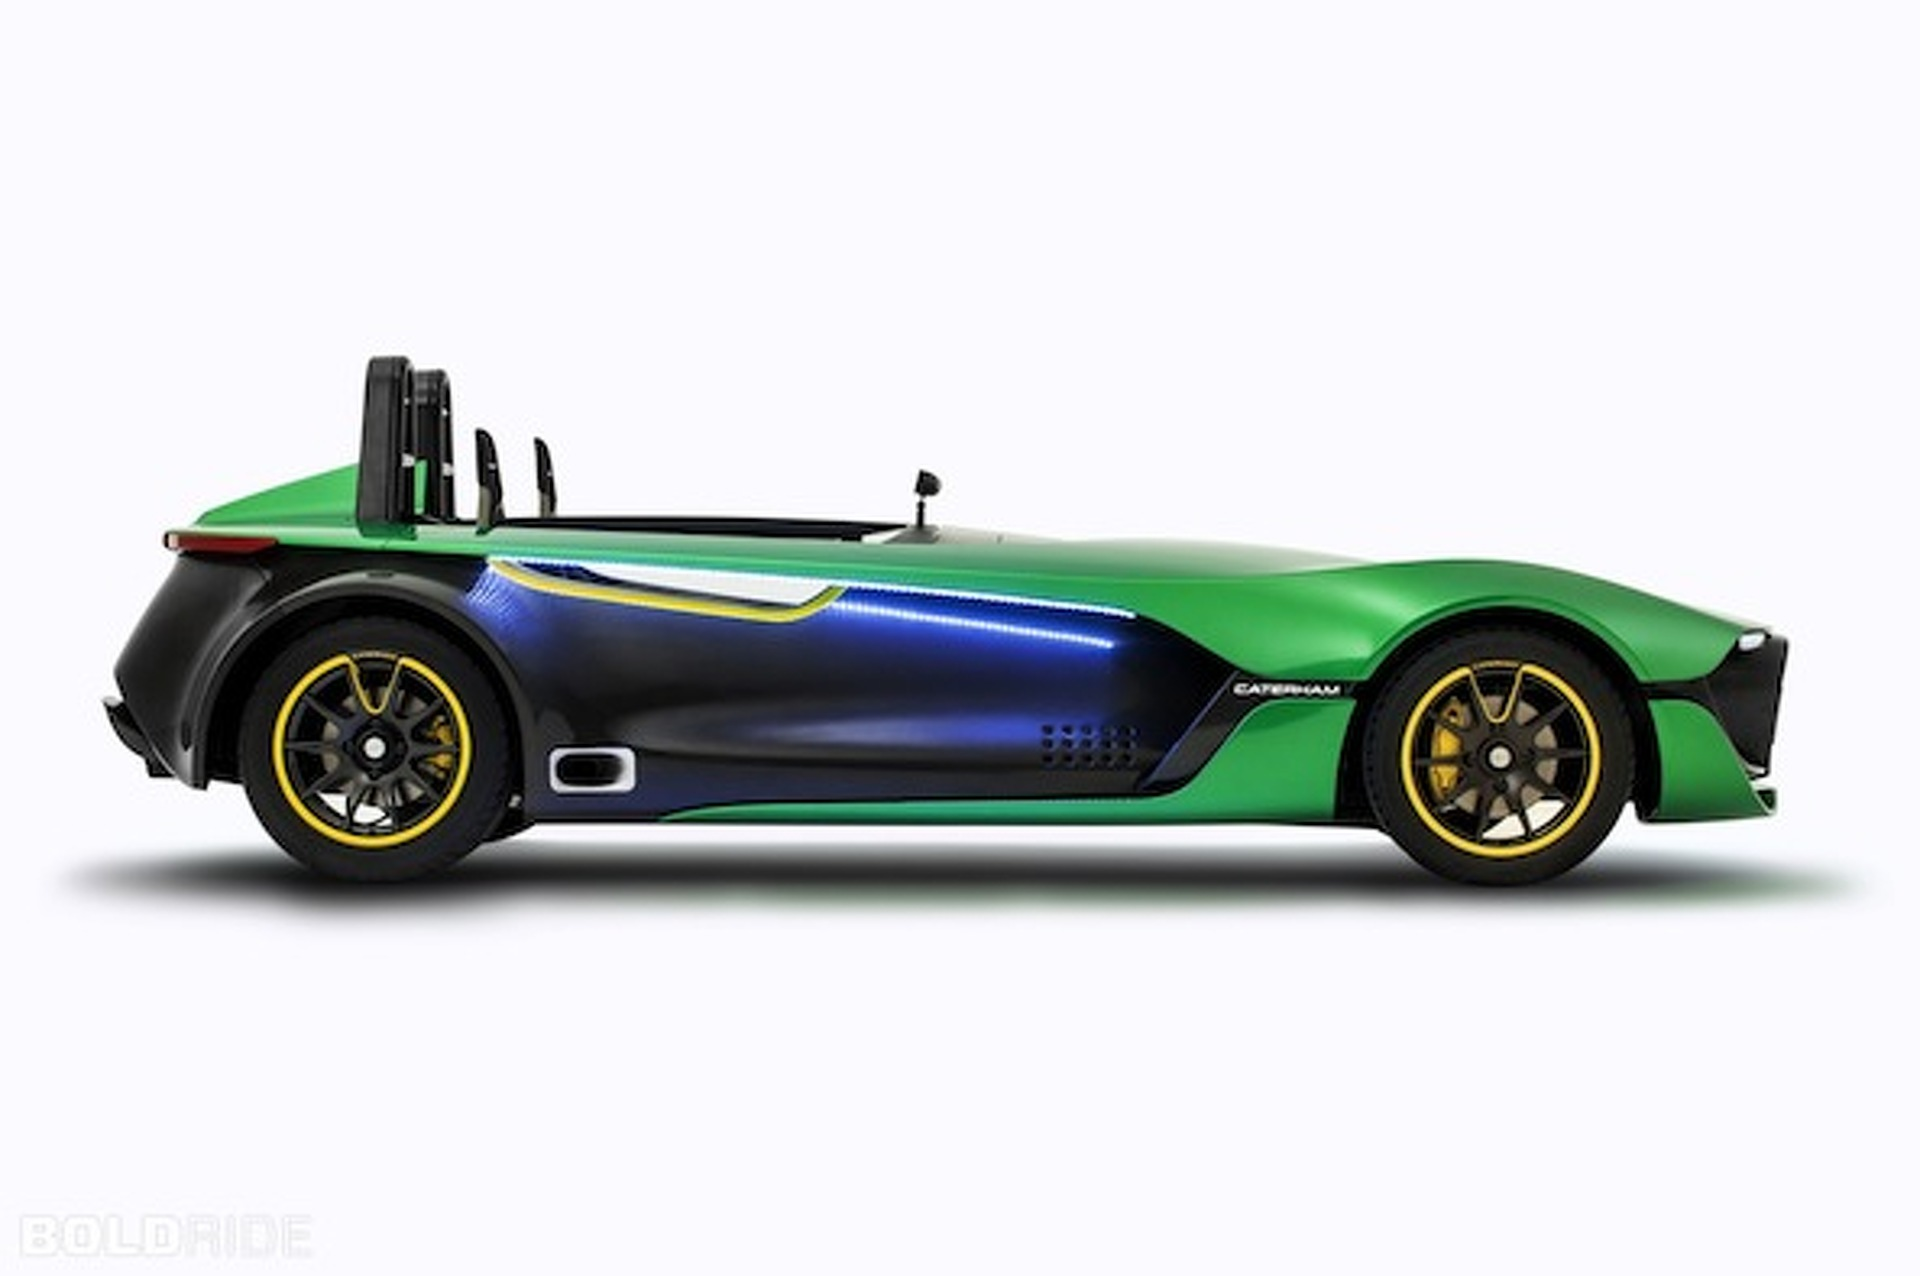 Caterham Unveils AeroSeven Concept, Says SUV and City Car Also in the Works